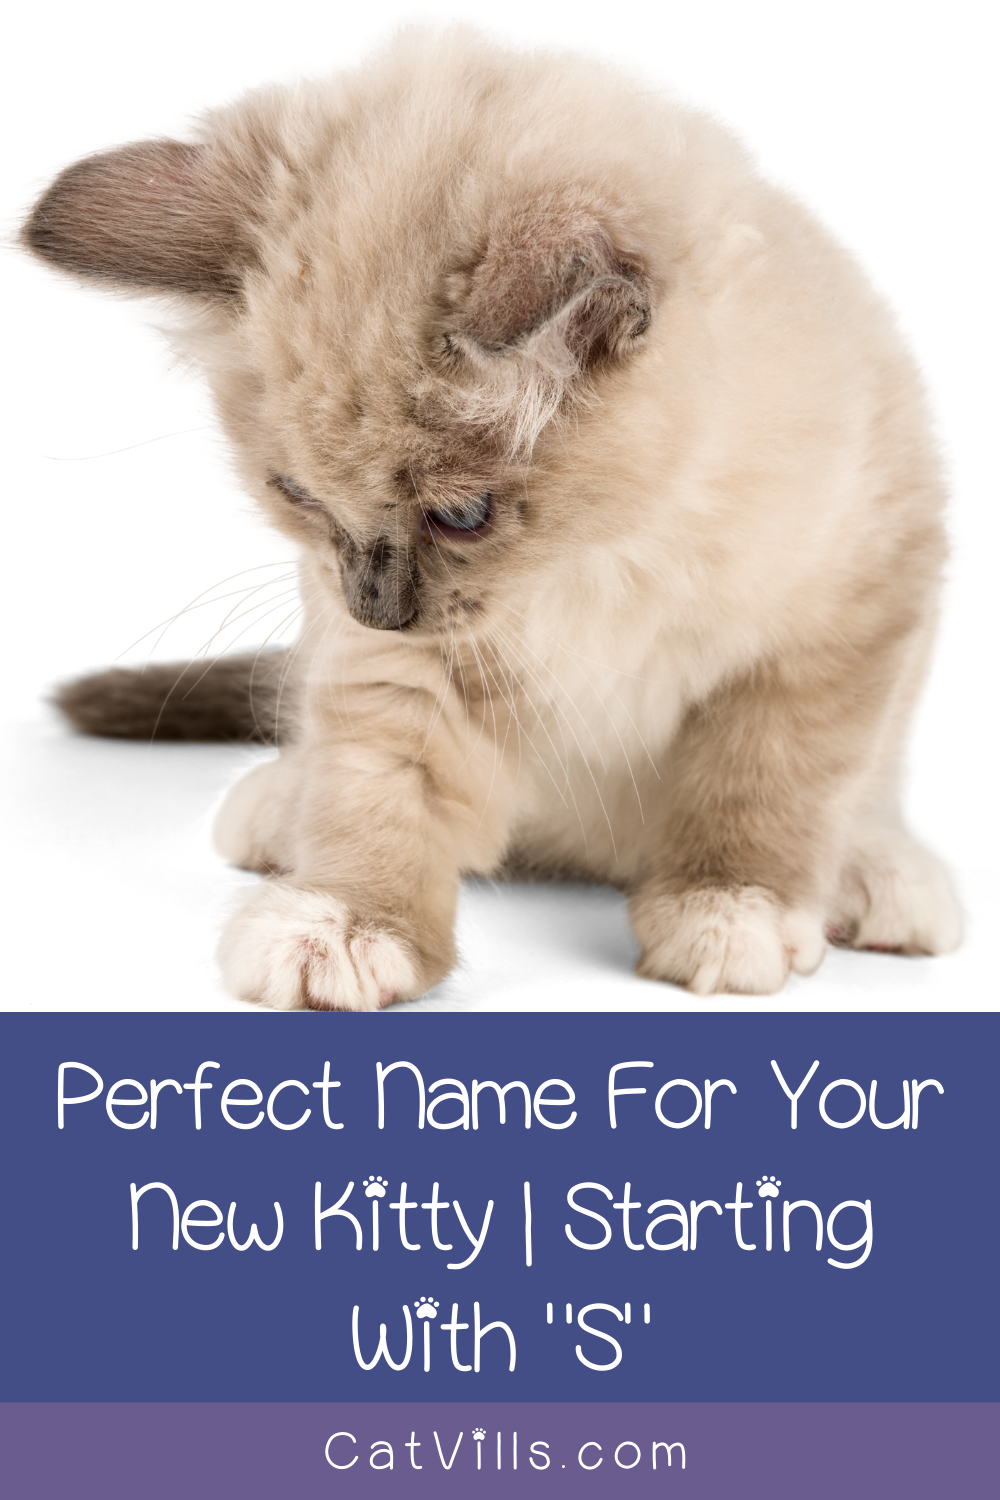 100 Sweet Cat Names Starting with S Cat names, Cats